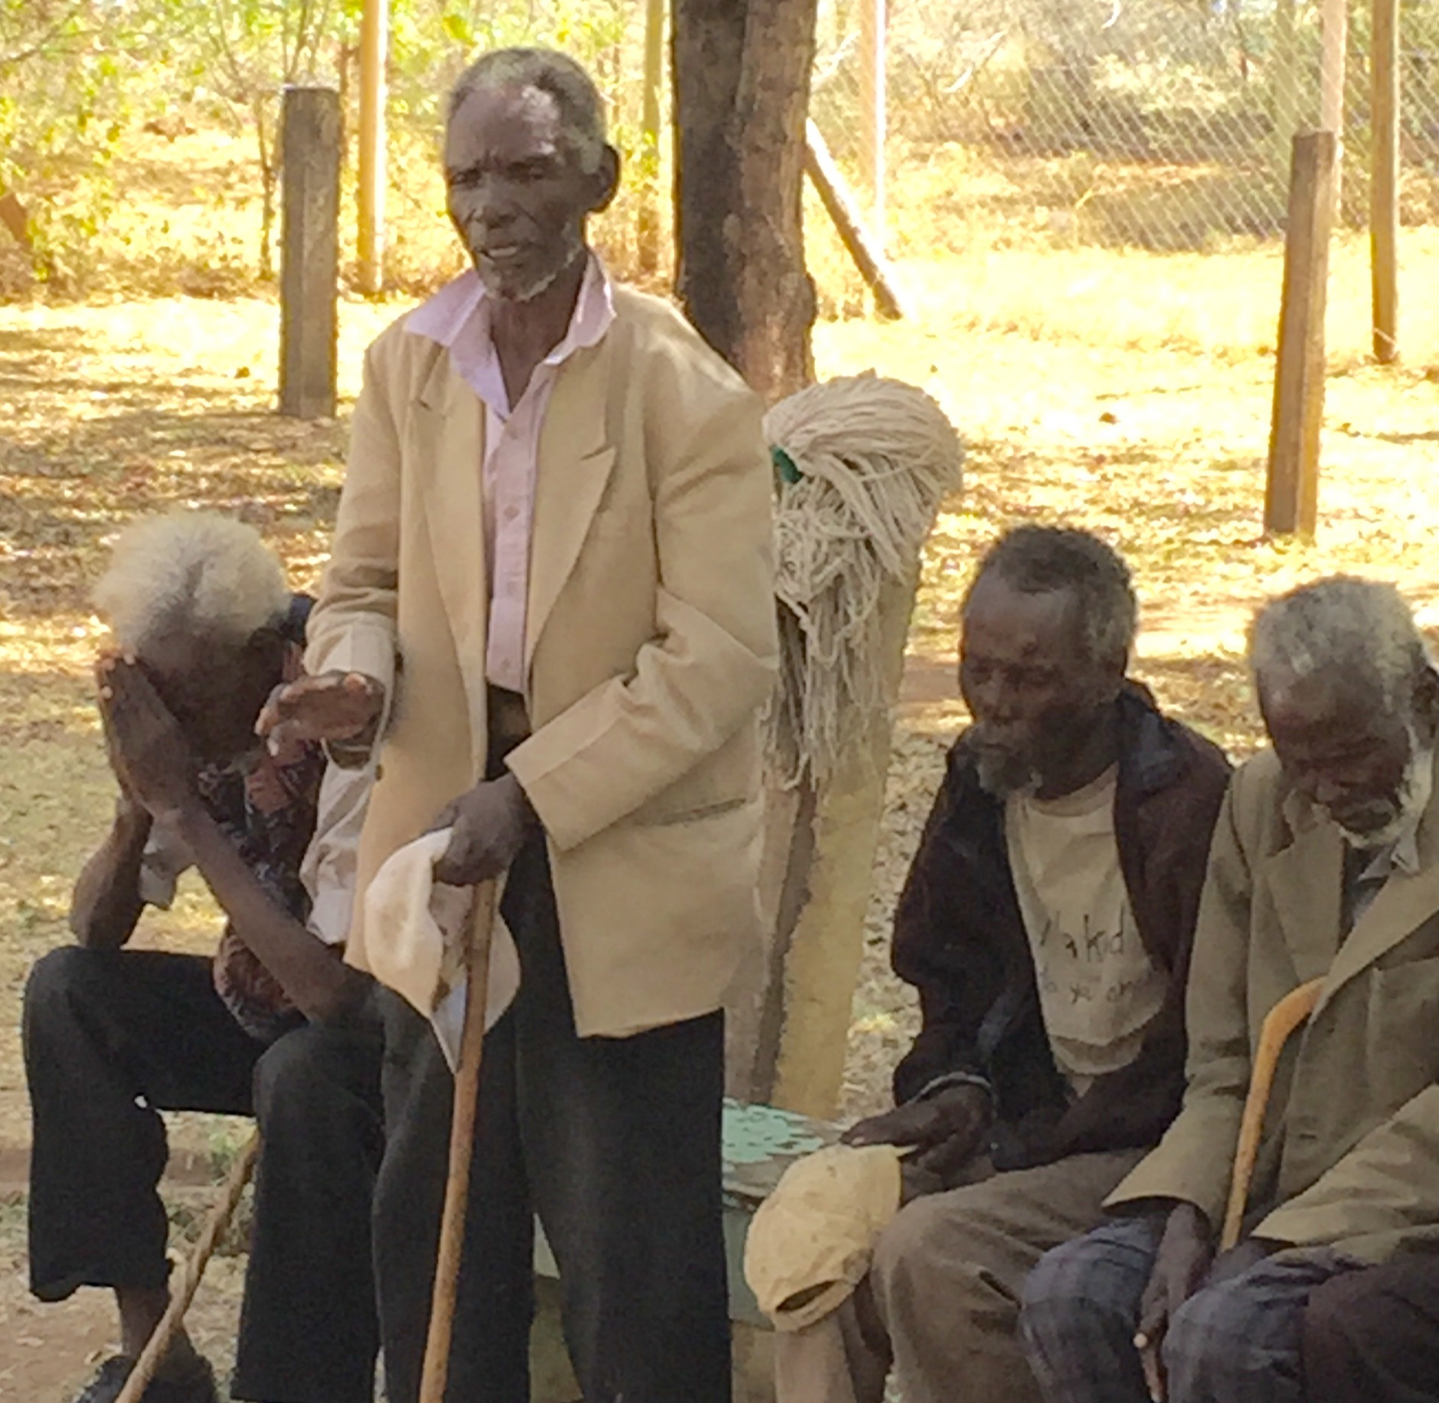 A cataract patient leads a prayer giving thanks for all of their blessings.